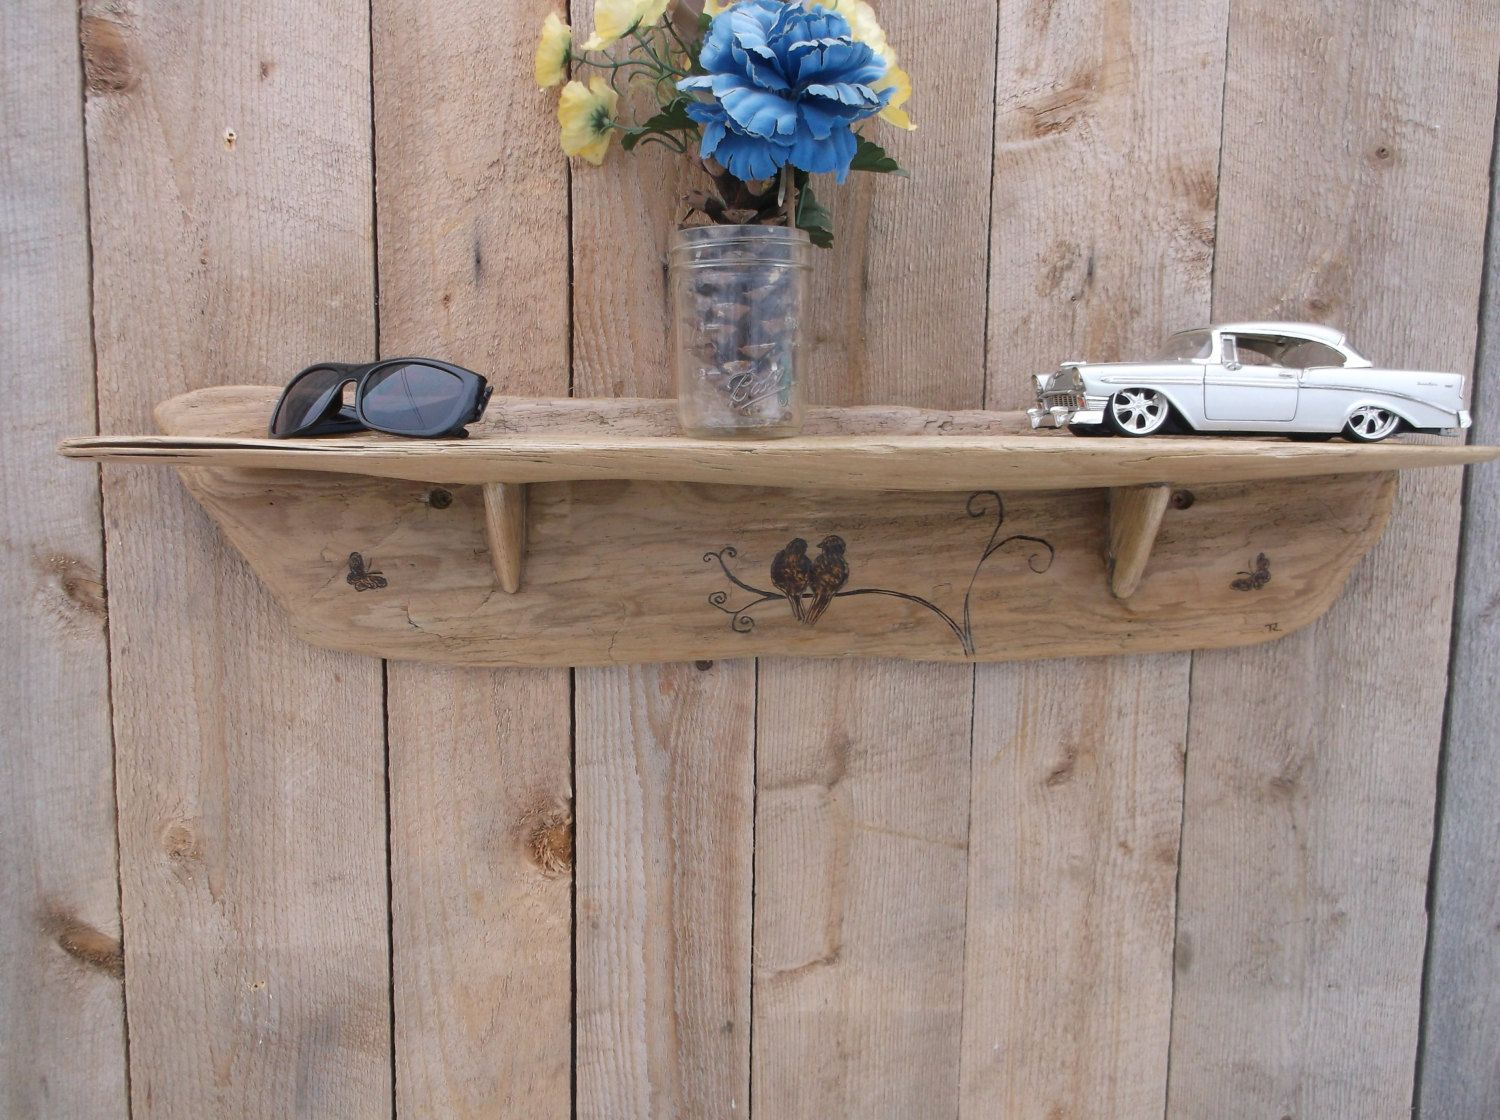 Lovebirds and butterflies on rustic driftwood wall shelf beach lovebirds and butterflies on rustic driftwood wall shelf beach wedding gift beach decor amipublicfo Images